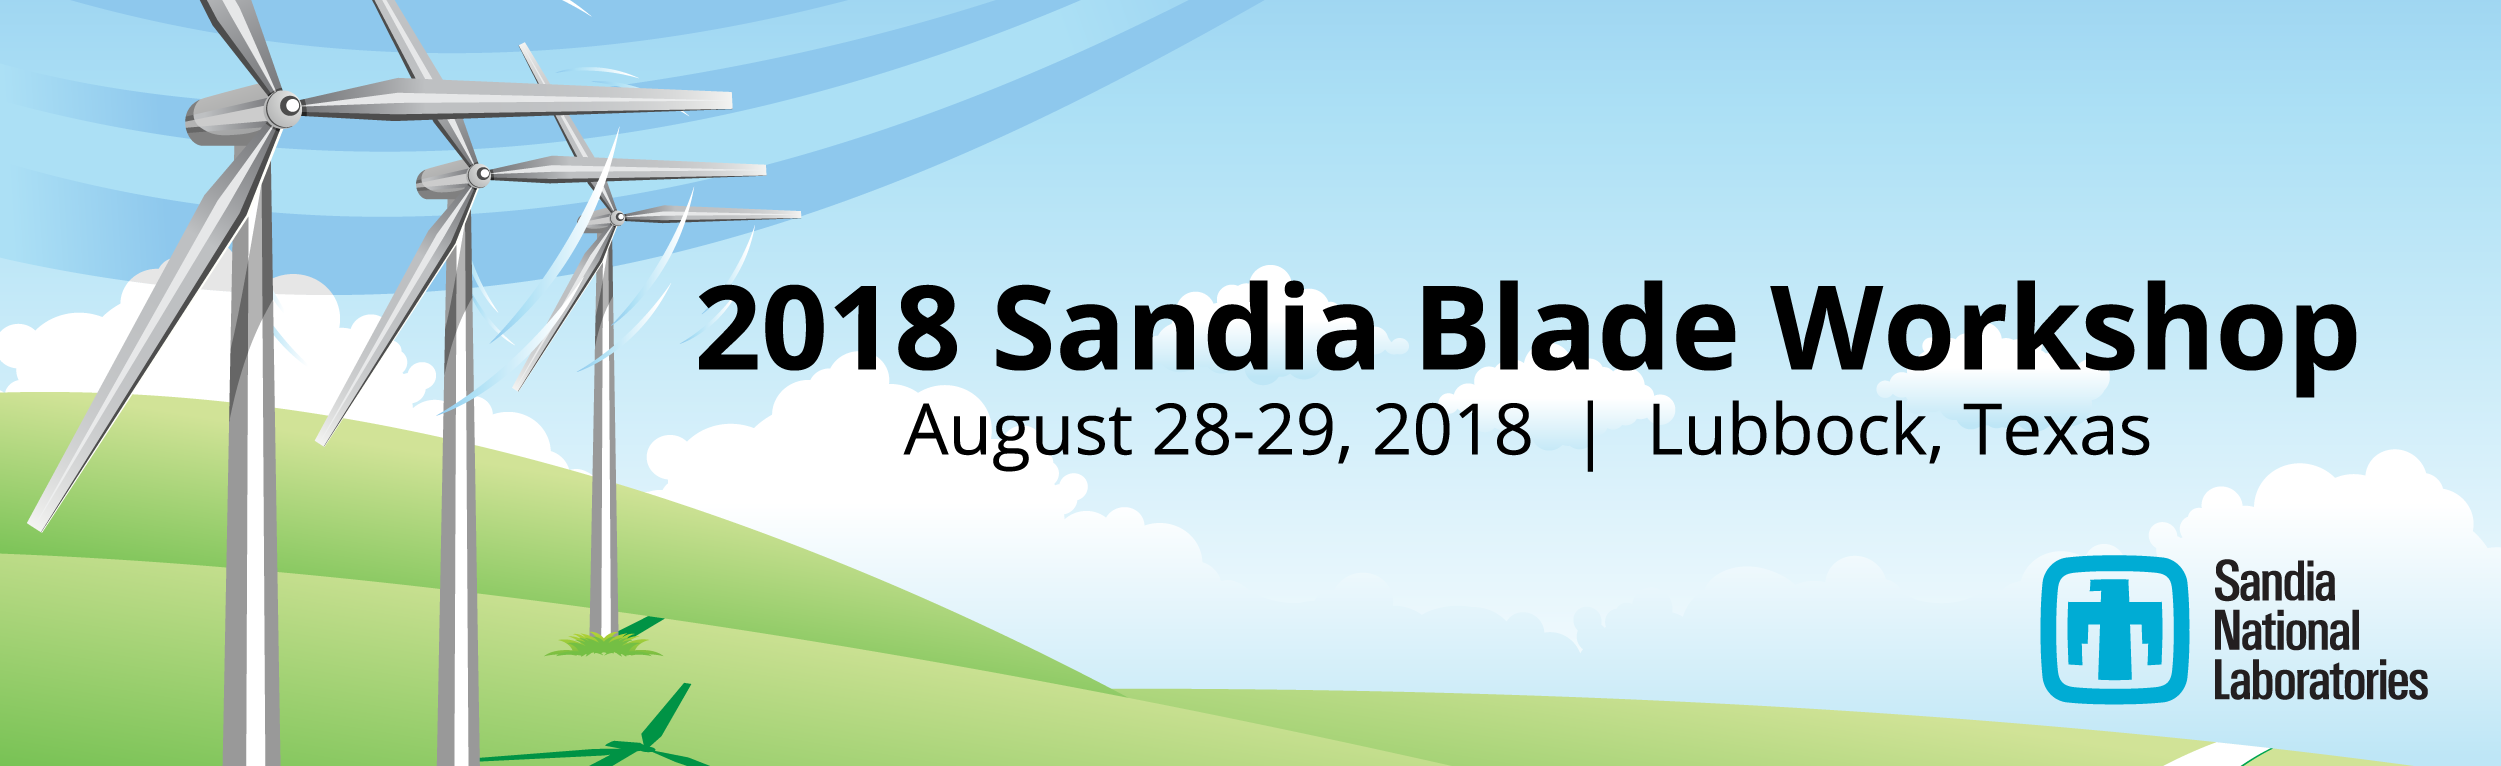 Register Today for the 2018 Sandia Blade Workshop